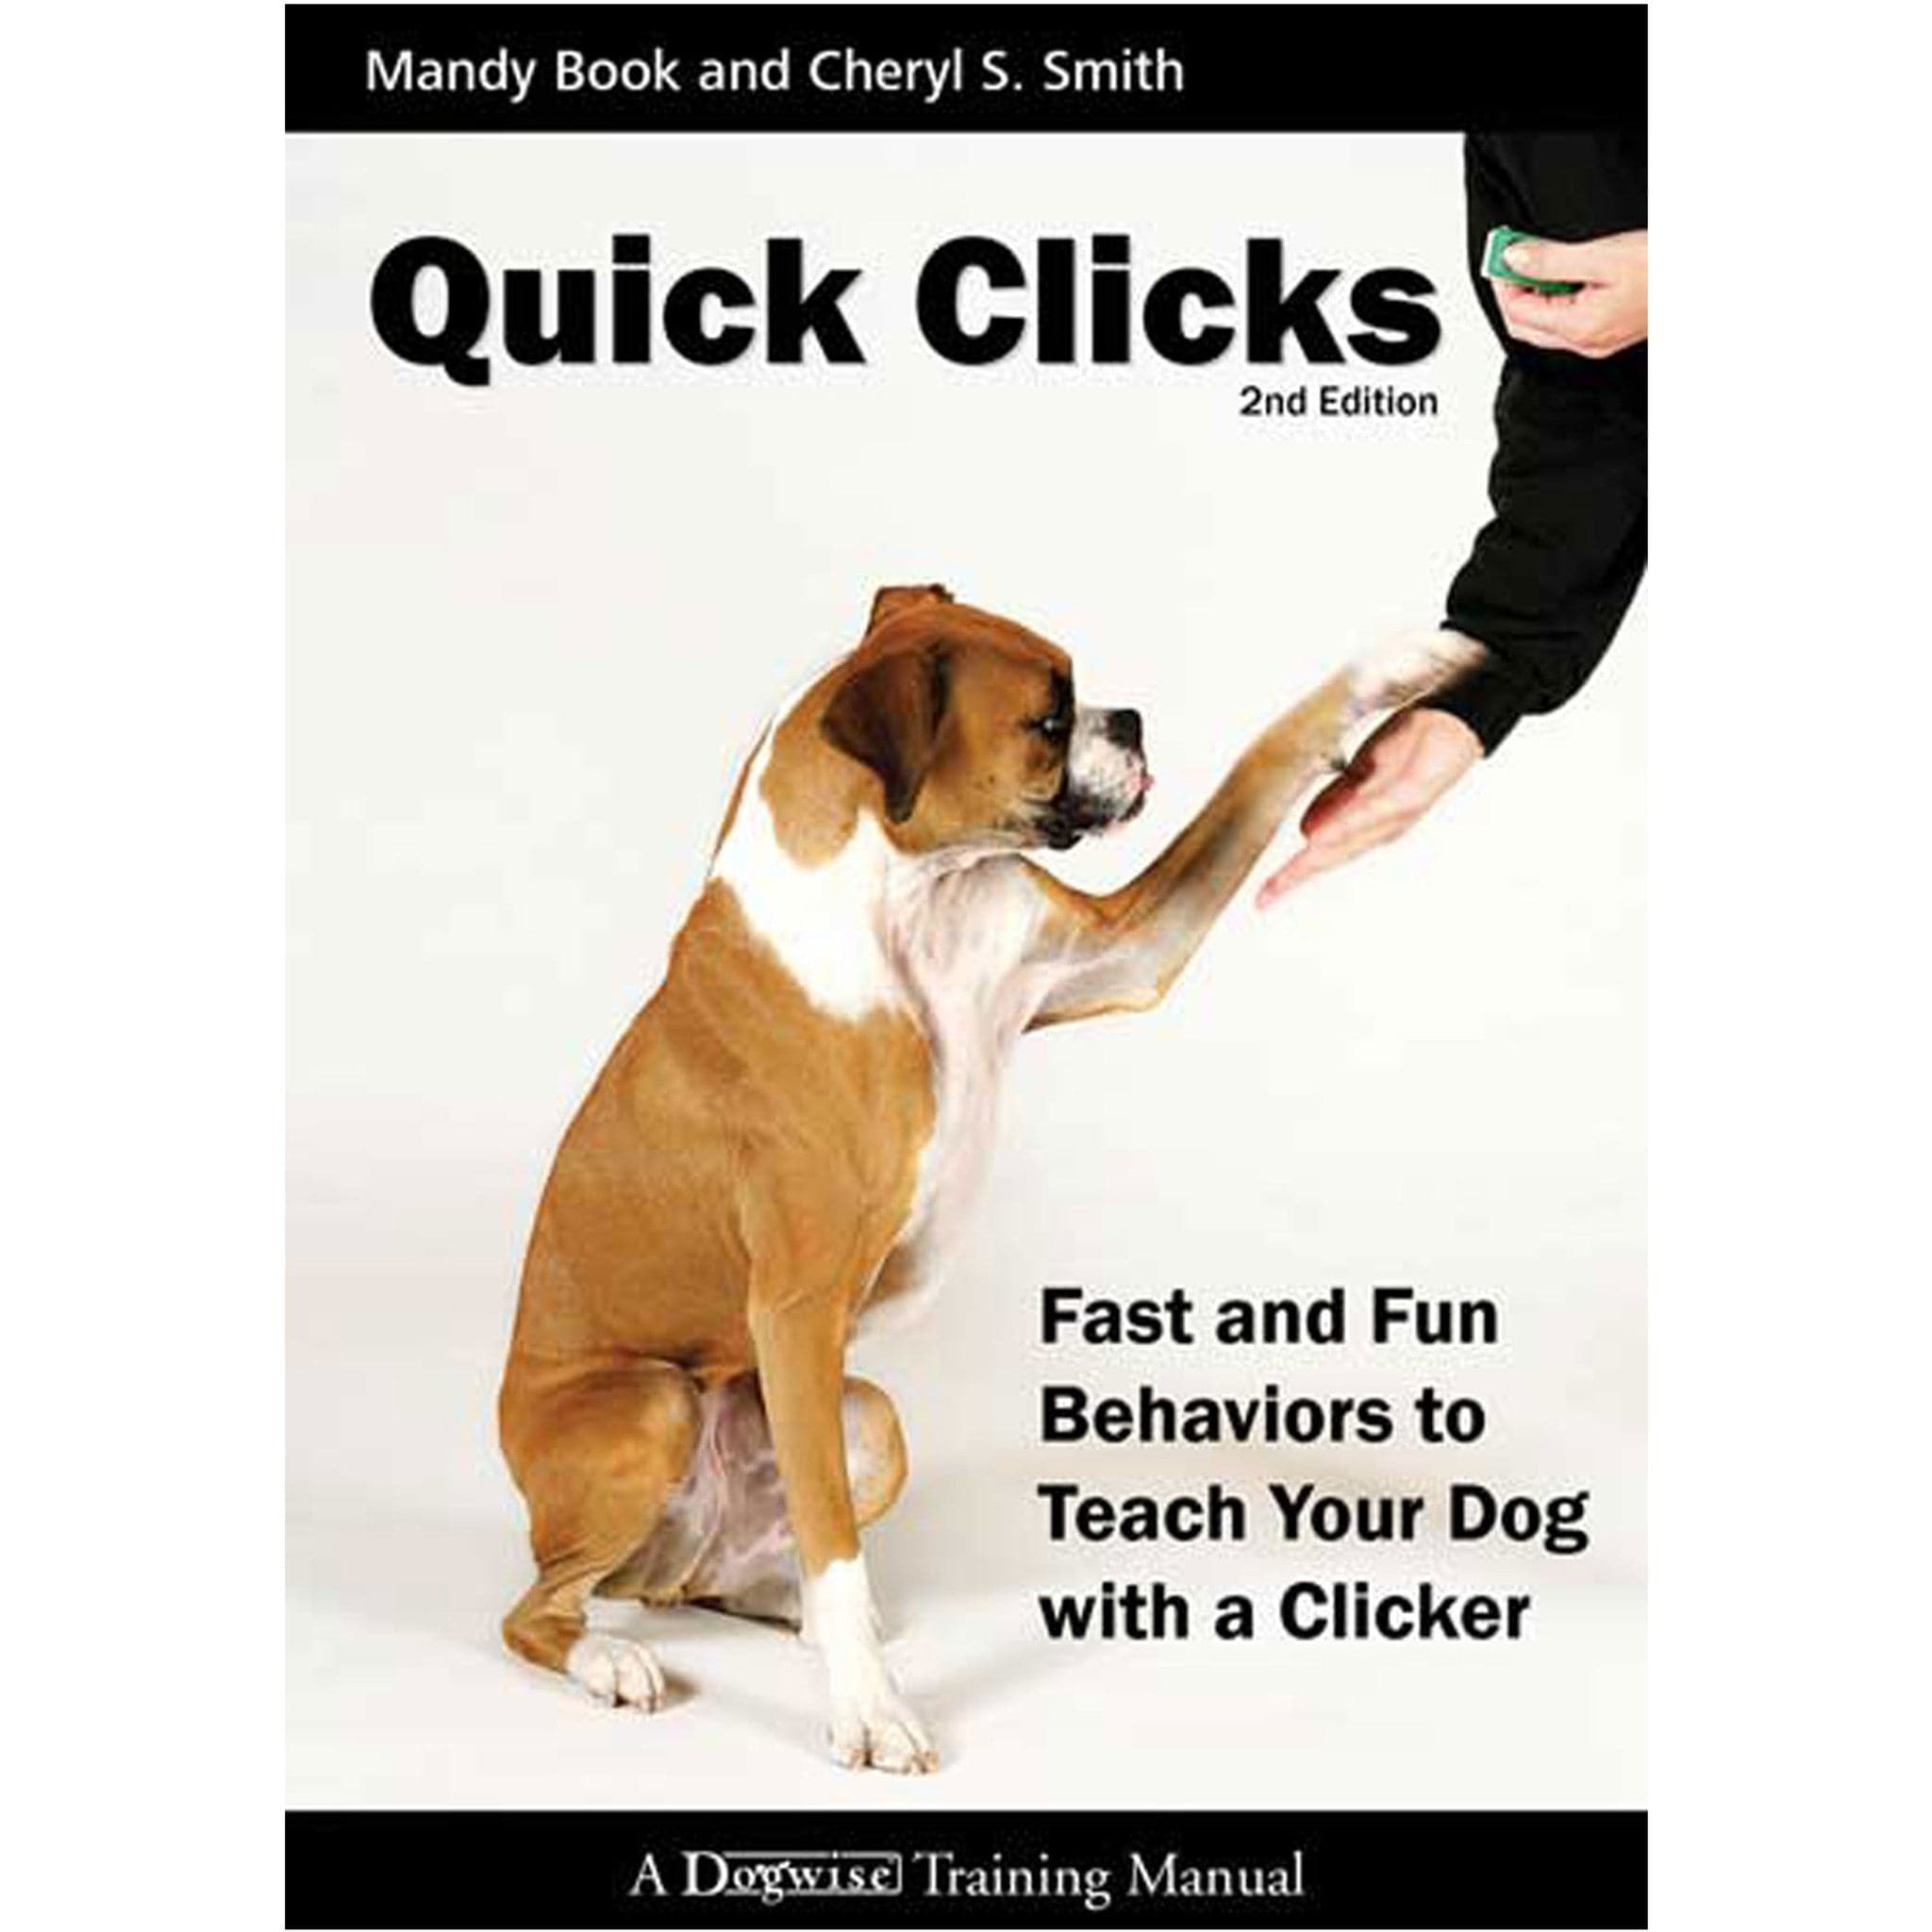 Quick Clicks: 40 Fast and Fun Behaviors to Train with a Clicker